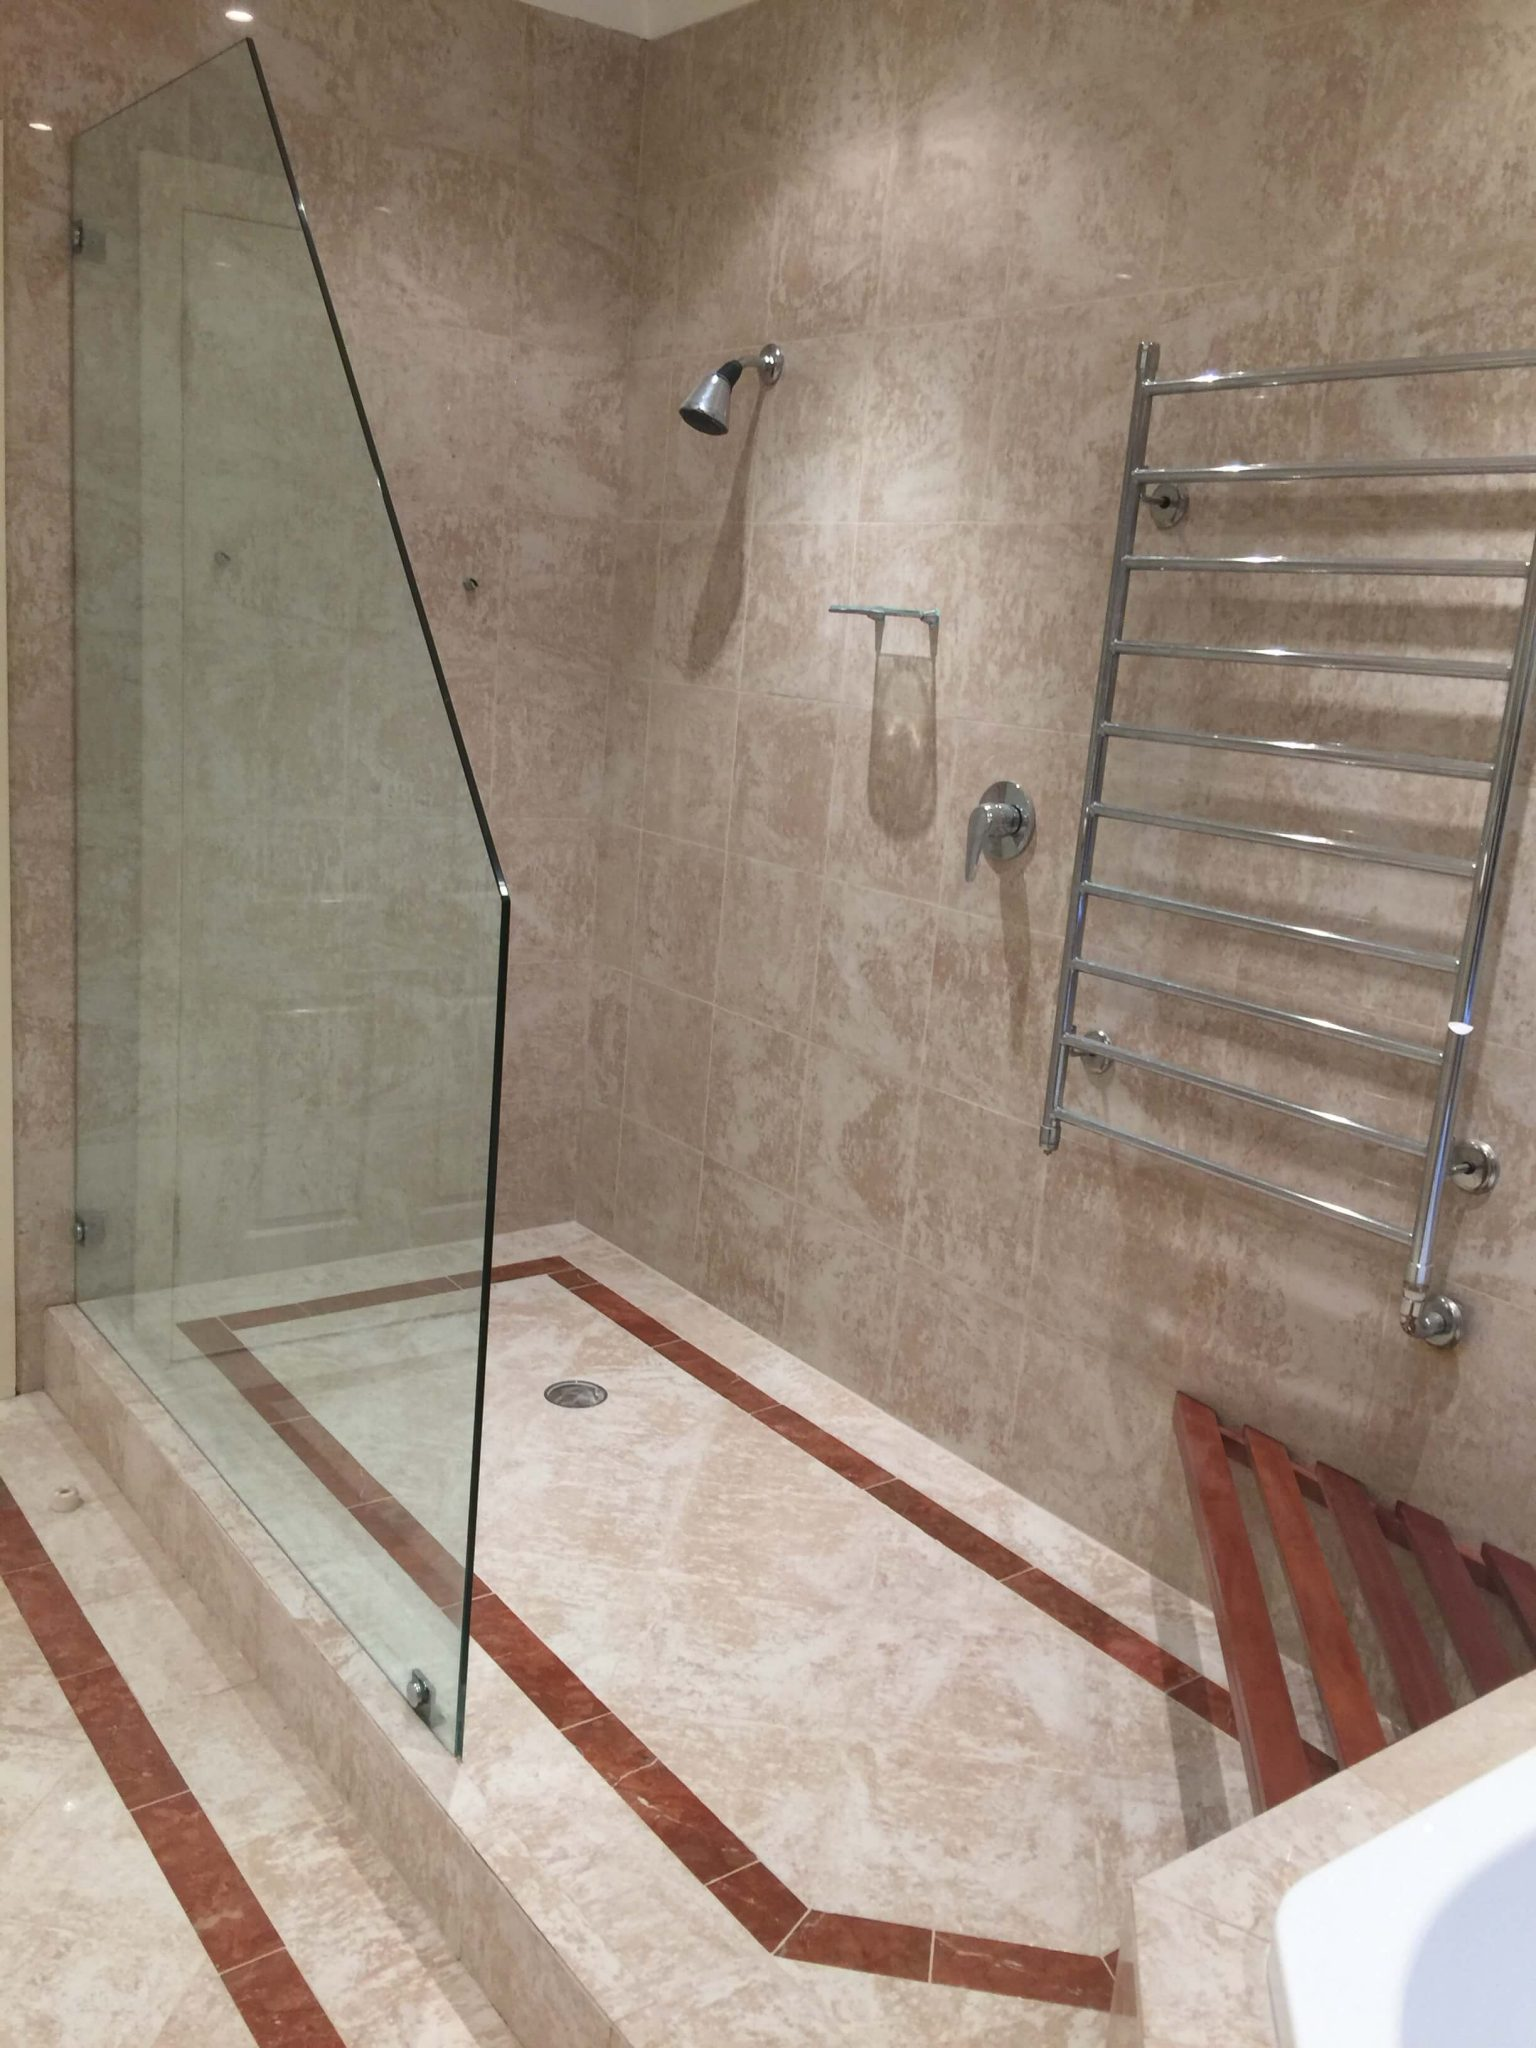 Cracked Missing Wall And Floor Grouts Results In This Shower Leakage. Epoxy  Grout Does Not